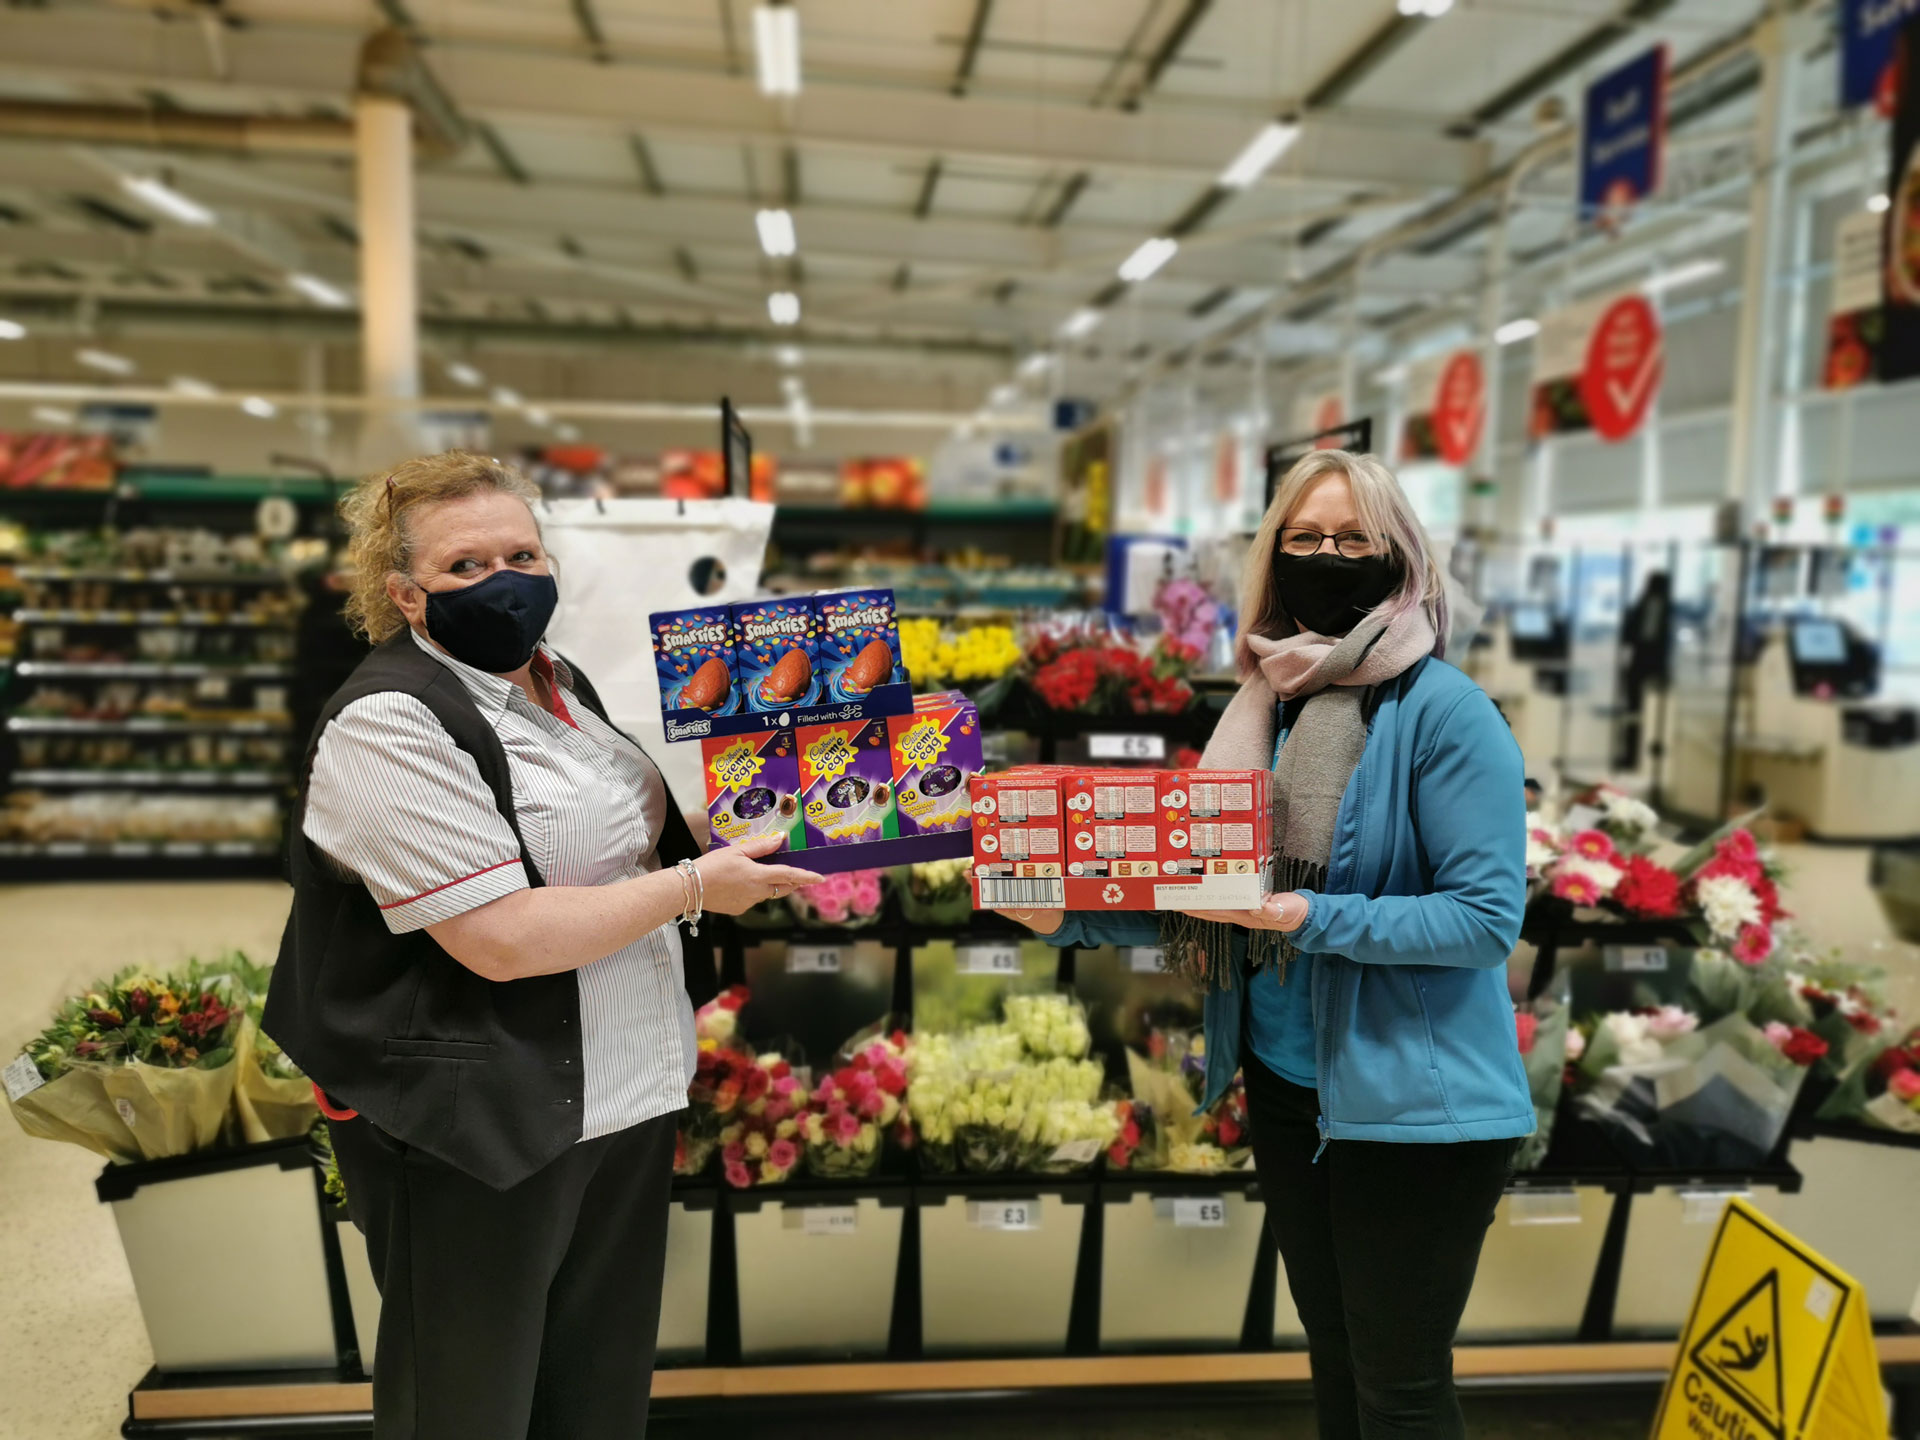 Hospiscare Heroes – An egg-stra special thank you